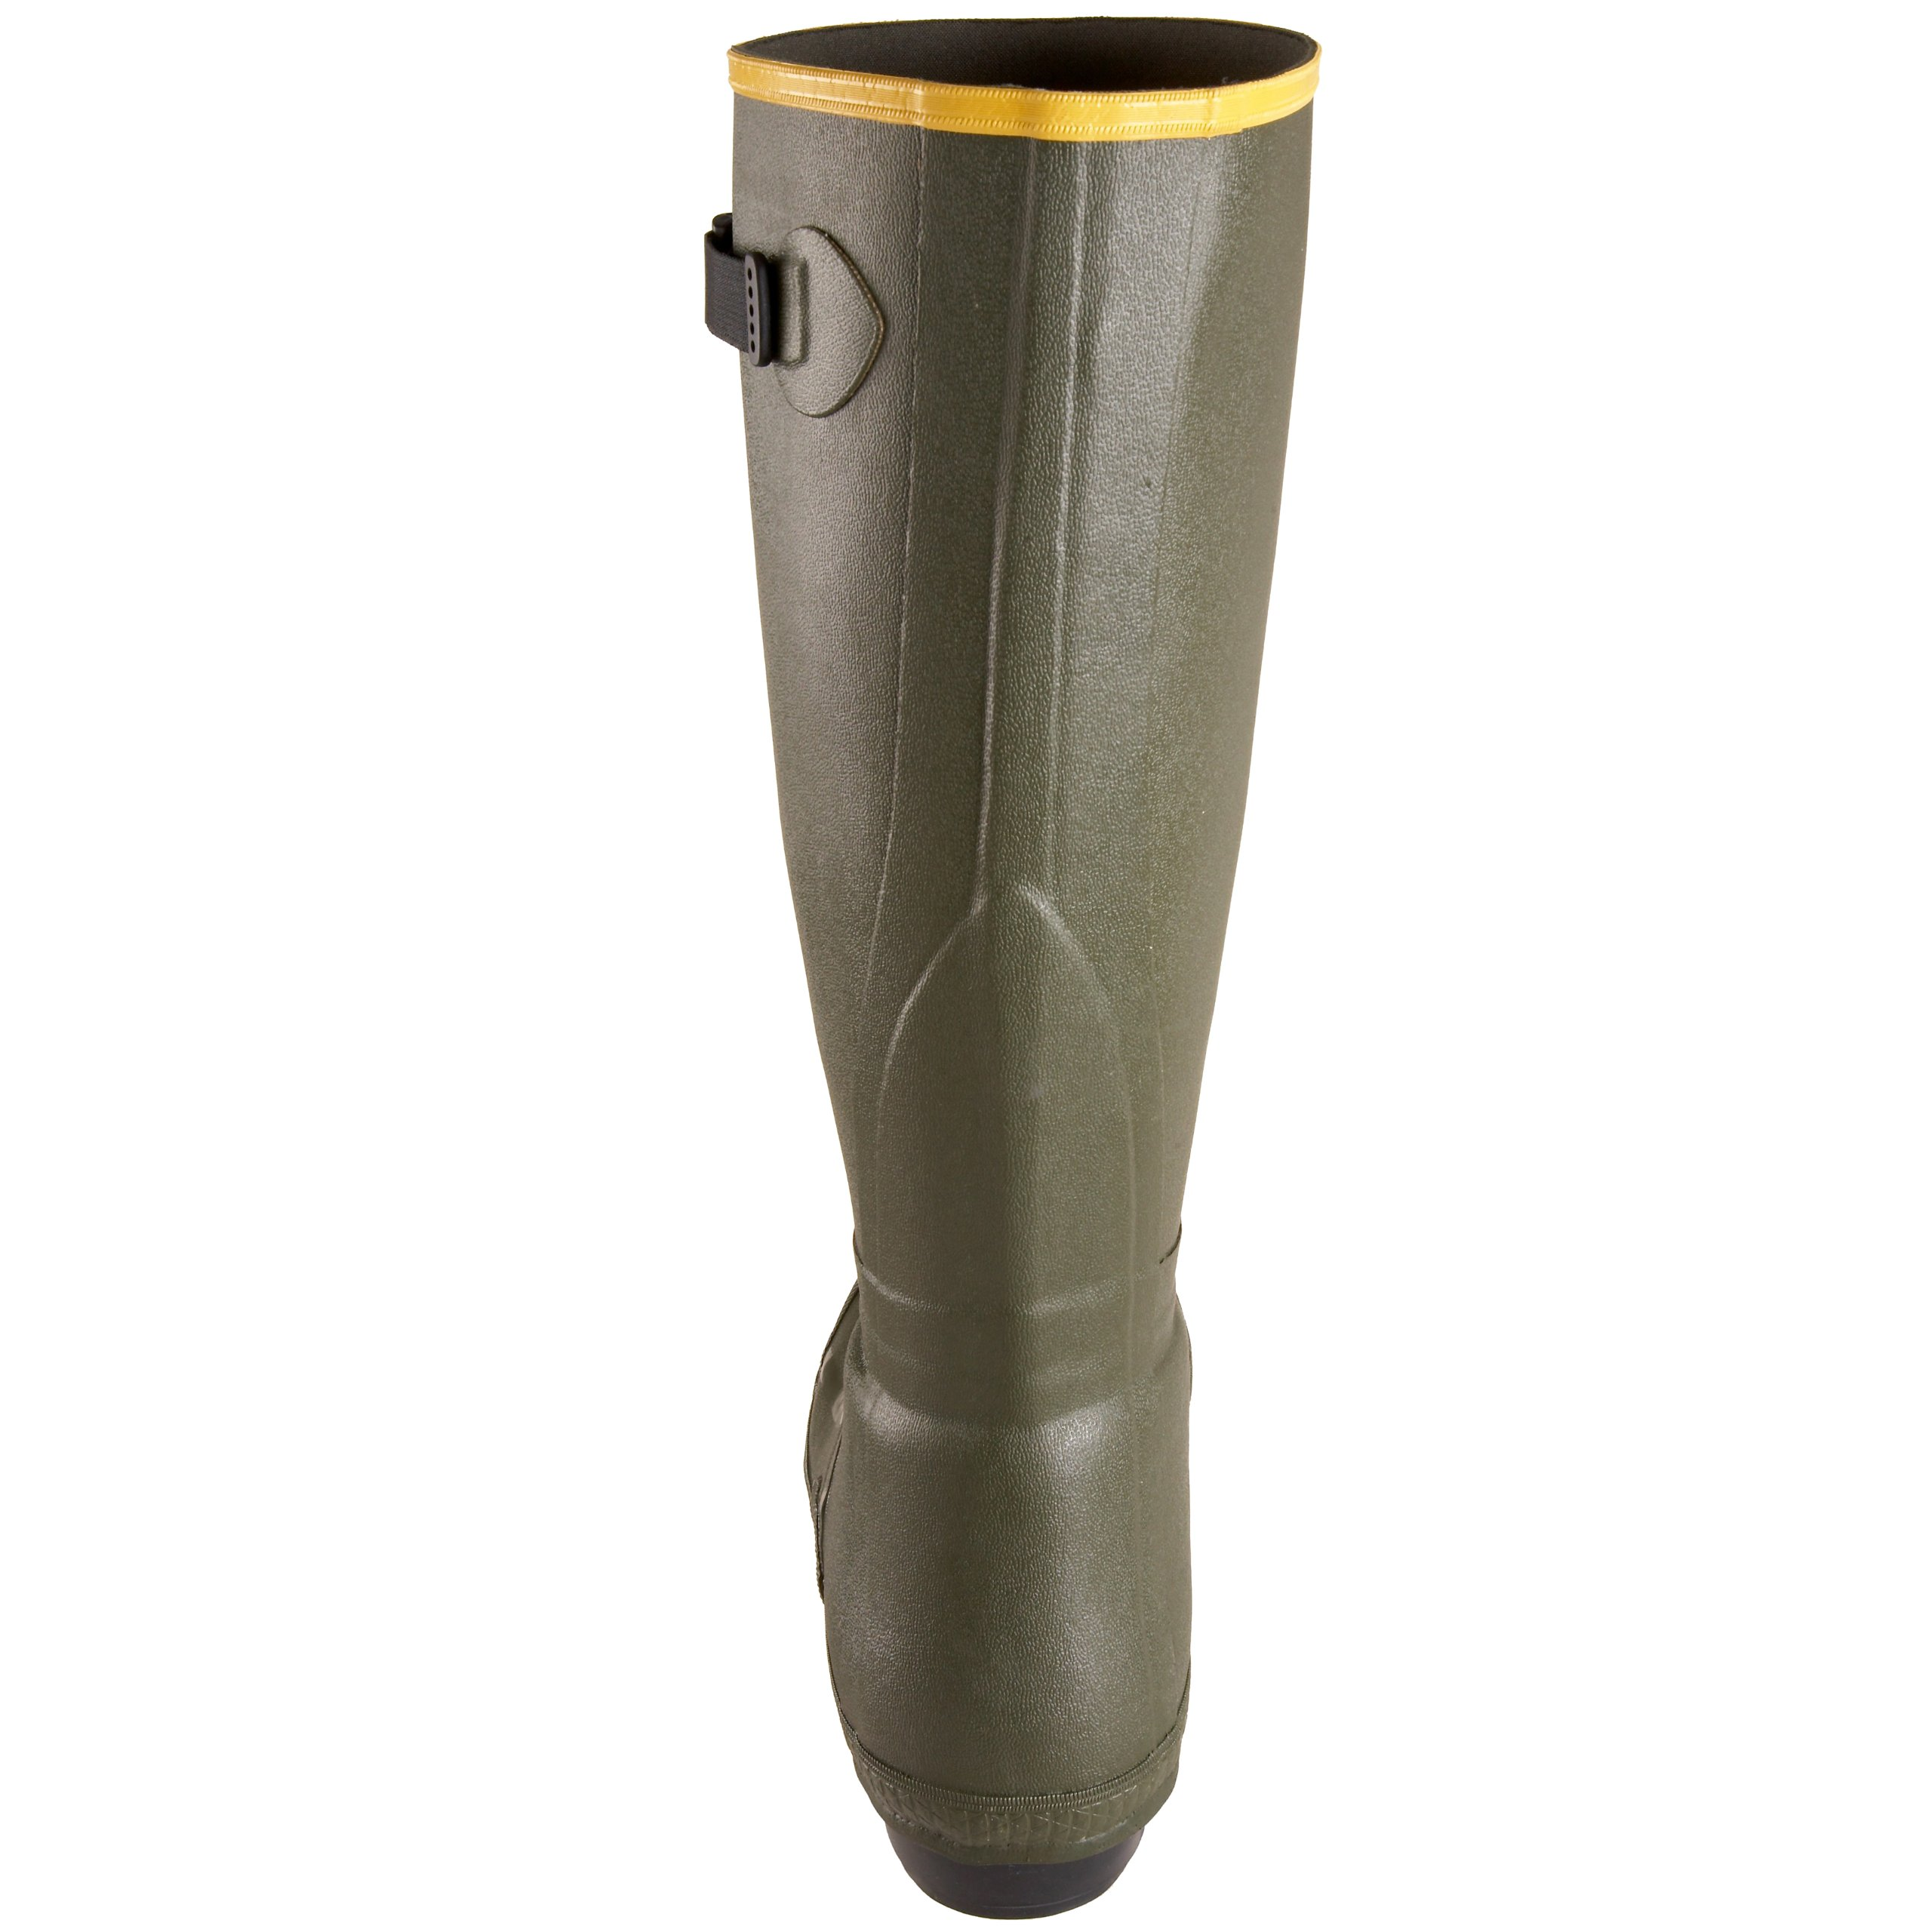 LaCrosse Men's 18'' Burly Air Grip Hunting Boot,Olive Drab Green,6 M US by Lacrosse (Image #2)